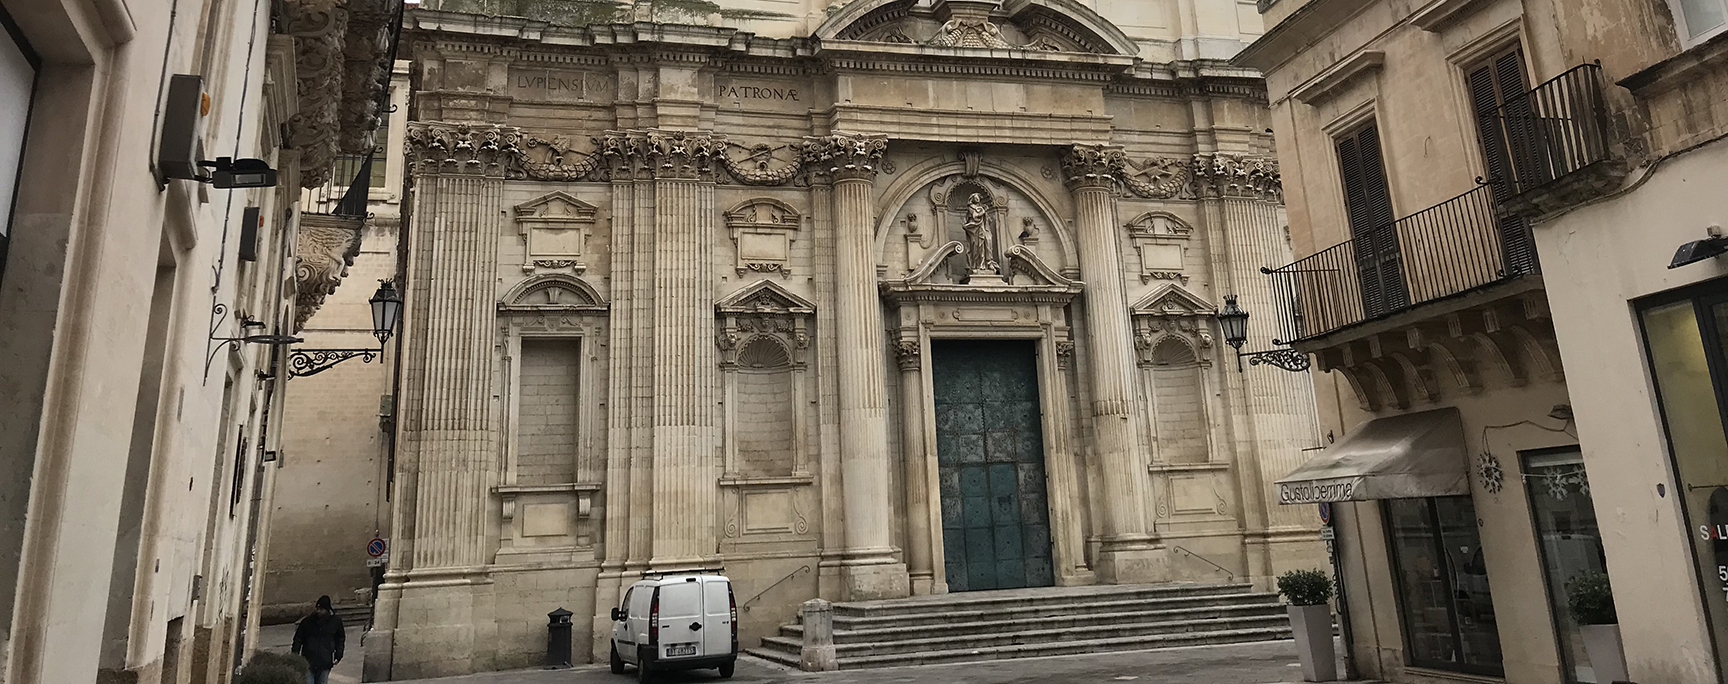 Getting lost in Lecce, one of life's great pleasures (photo essay)